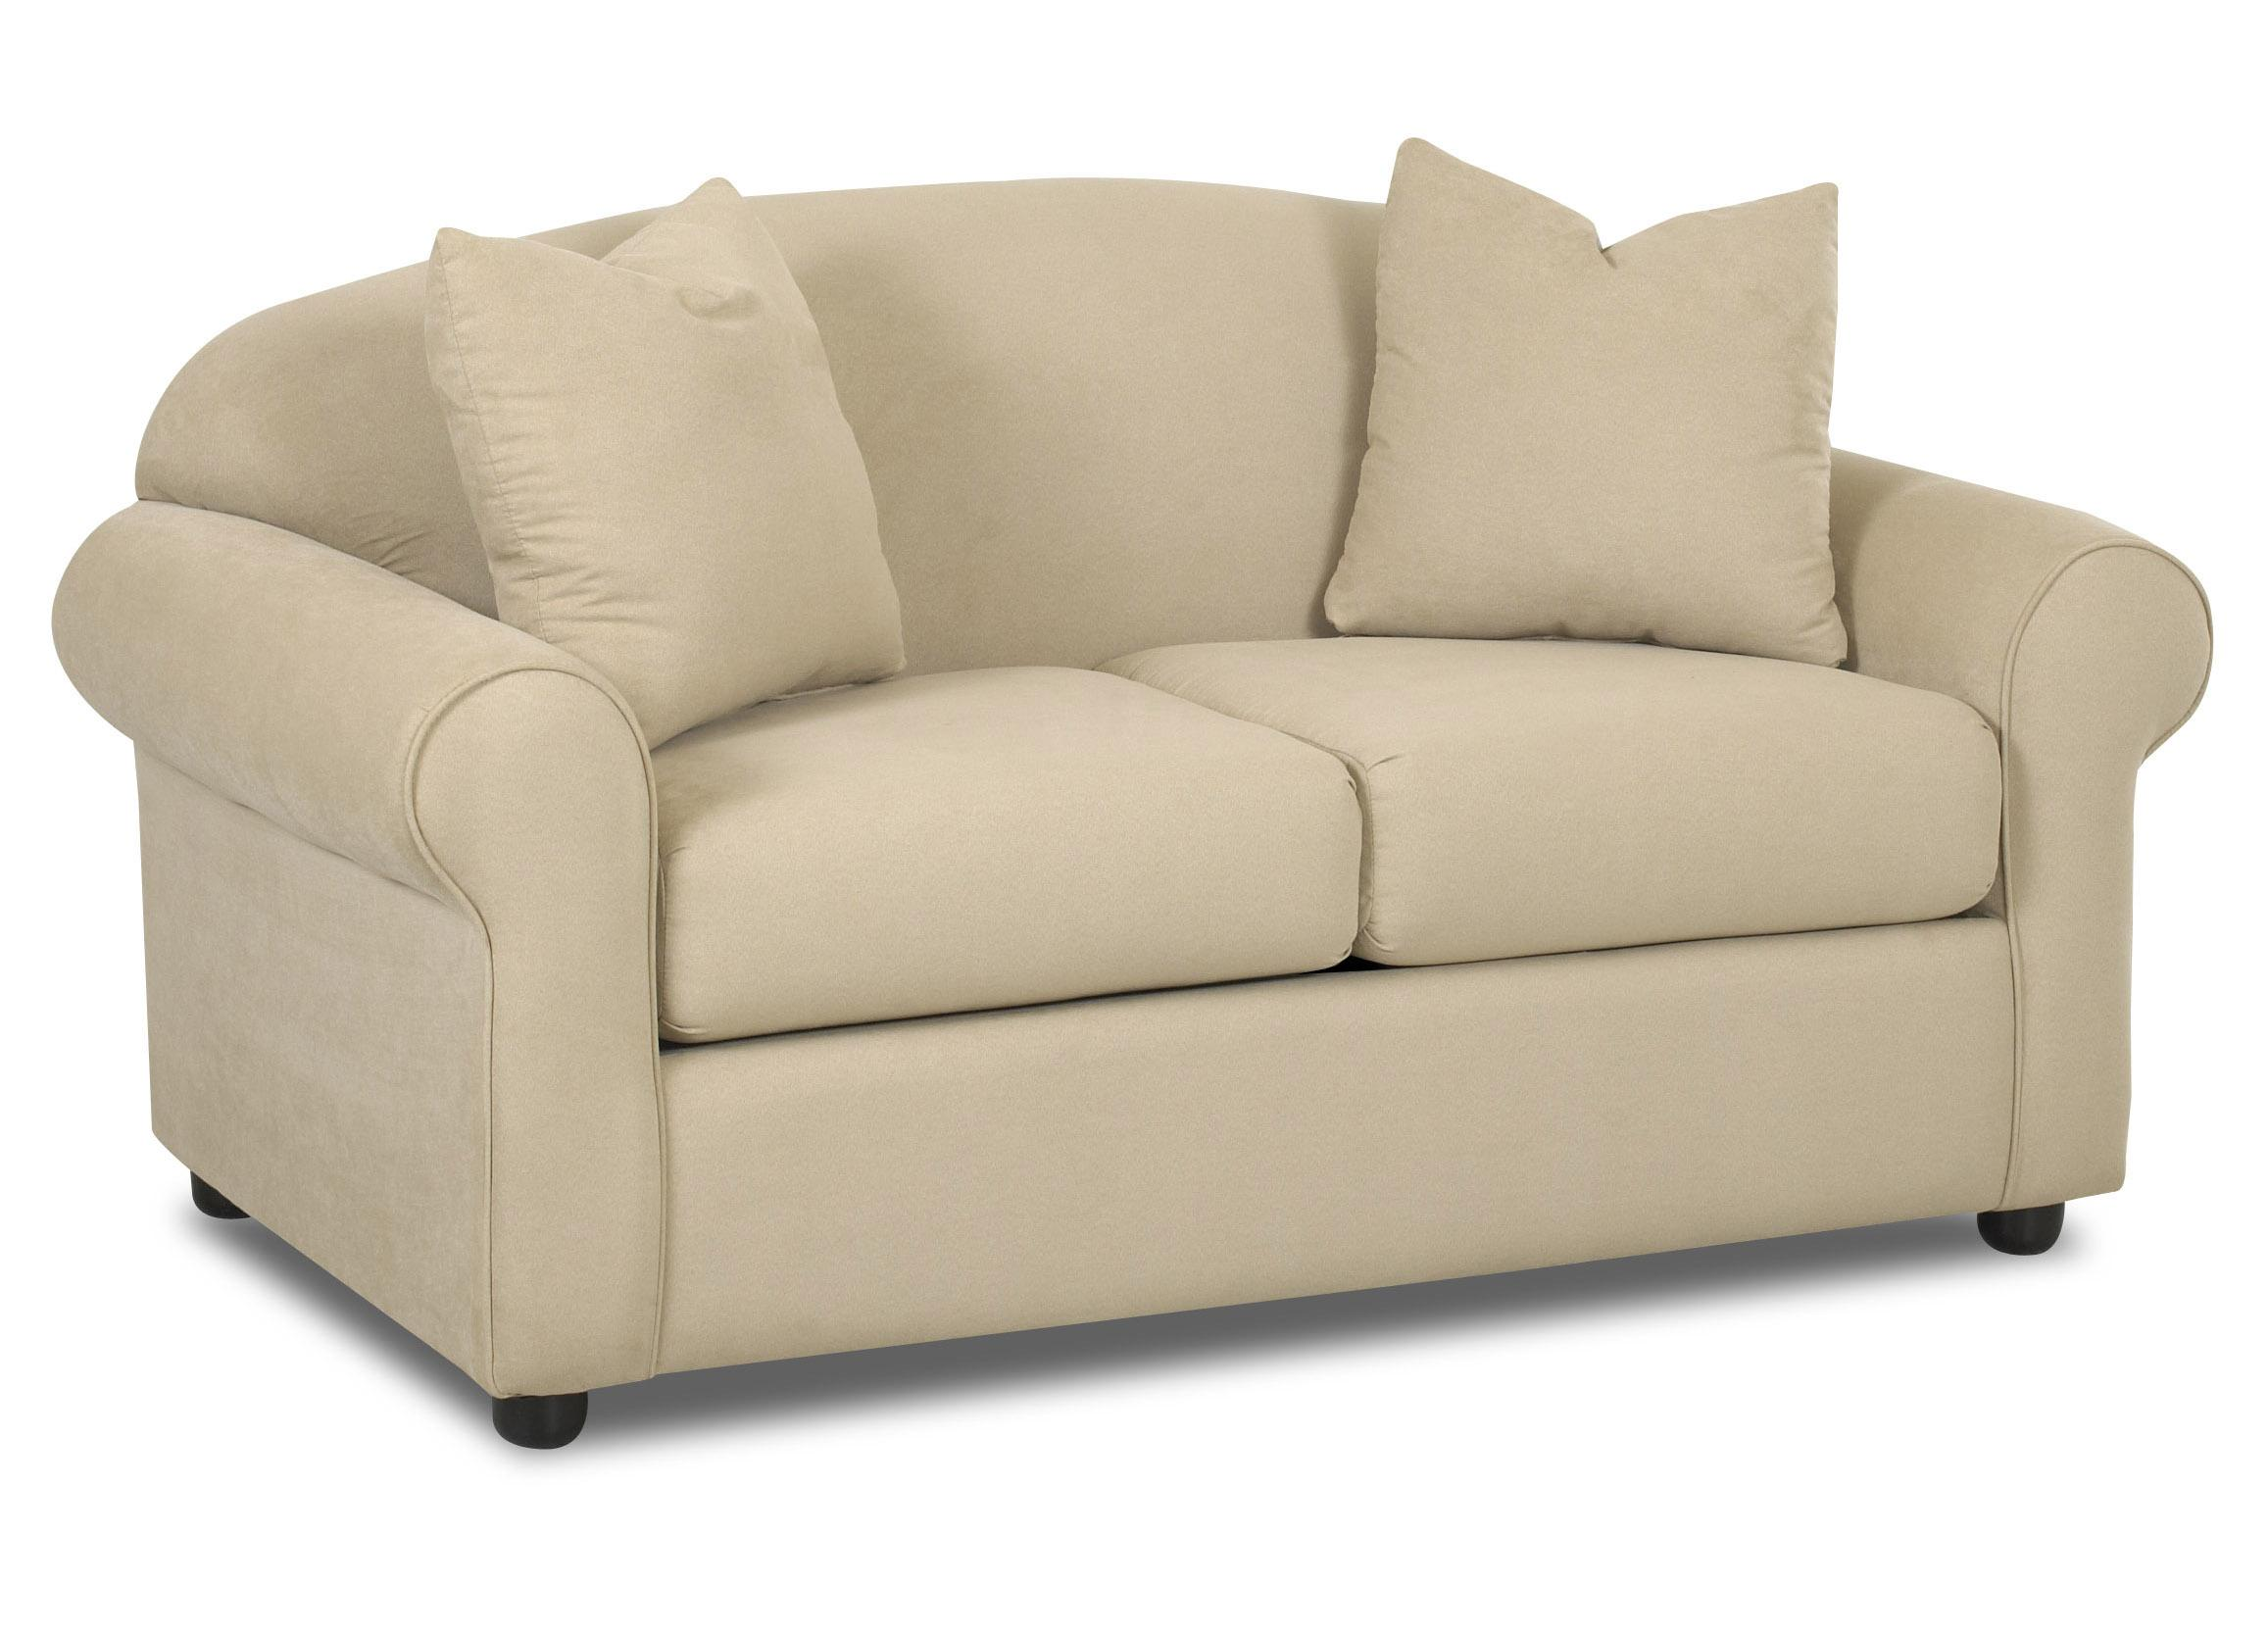 Klaussner Possibilities 500 Ls Low Profile Loveseat With Accent Pillows Dunk Bright